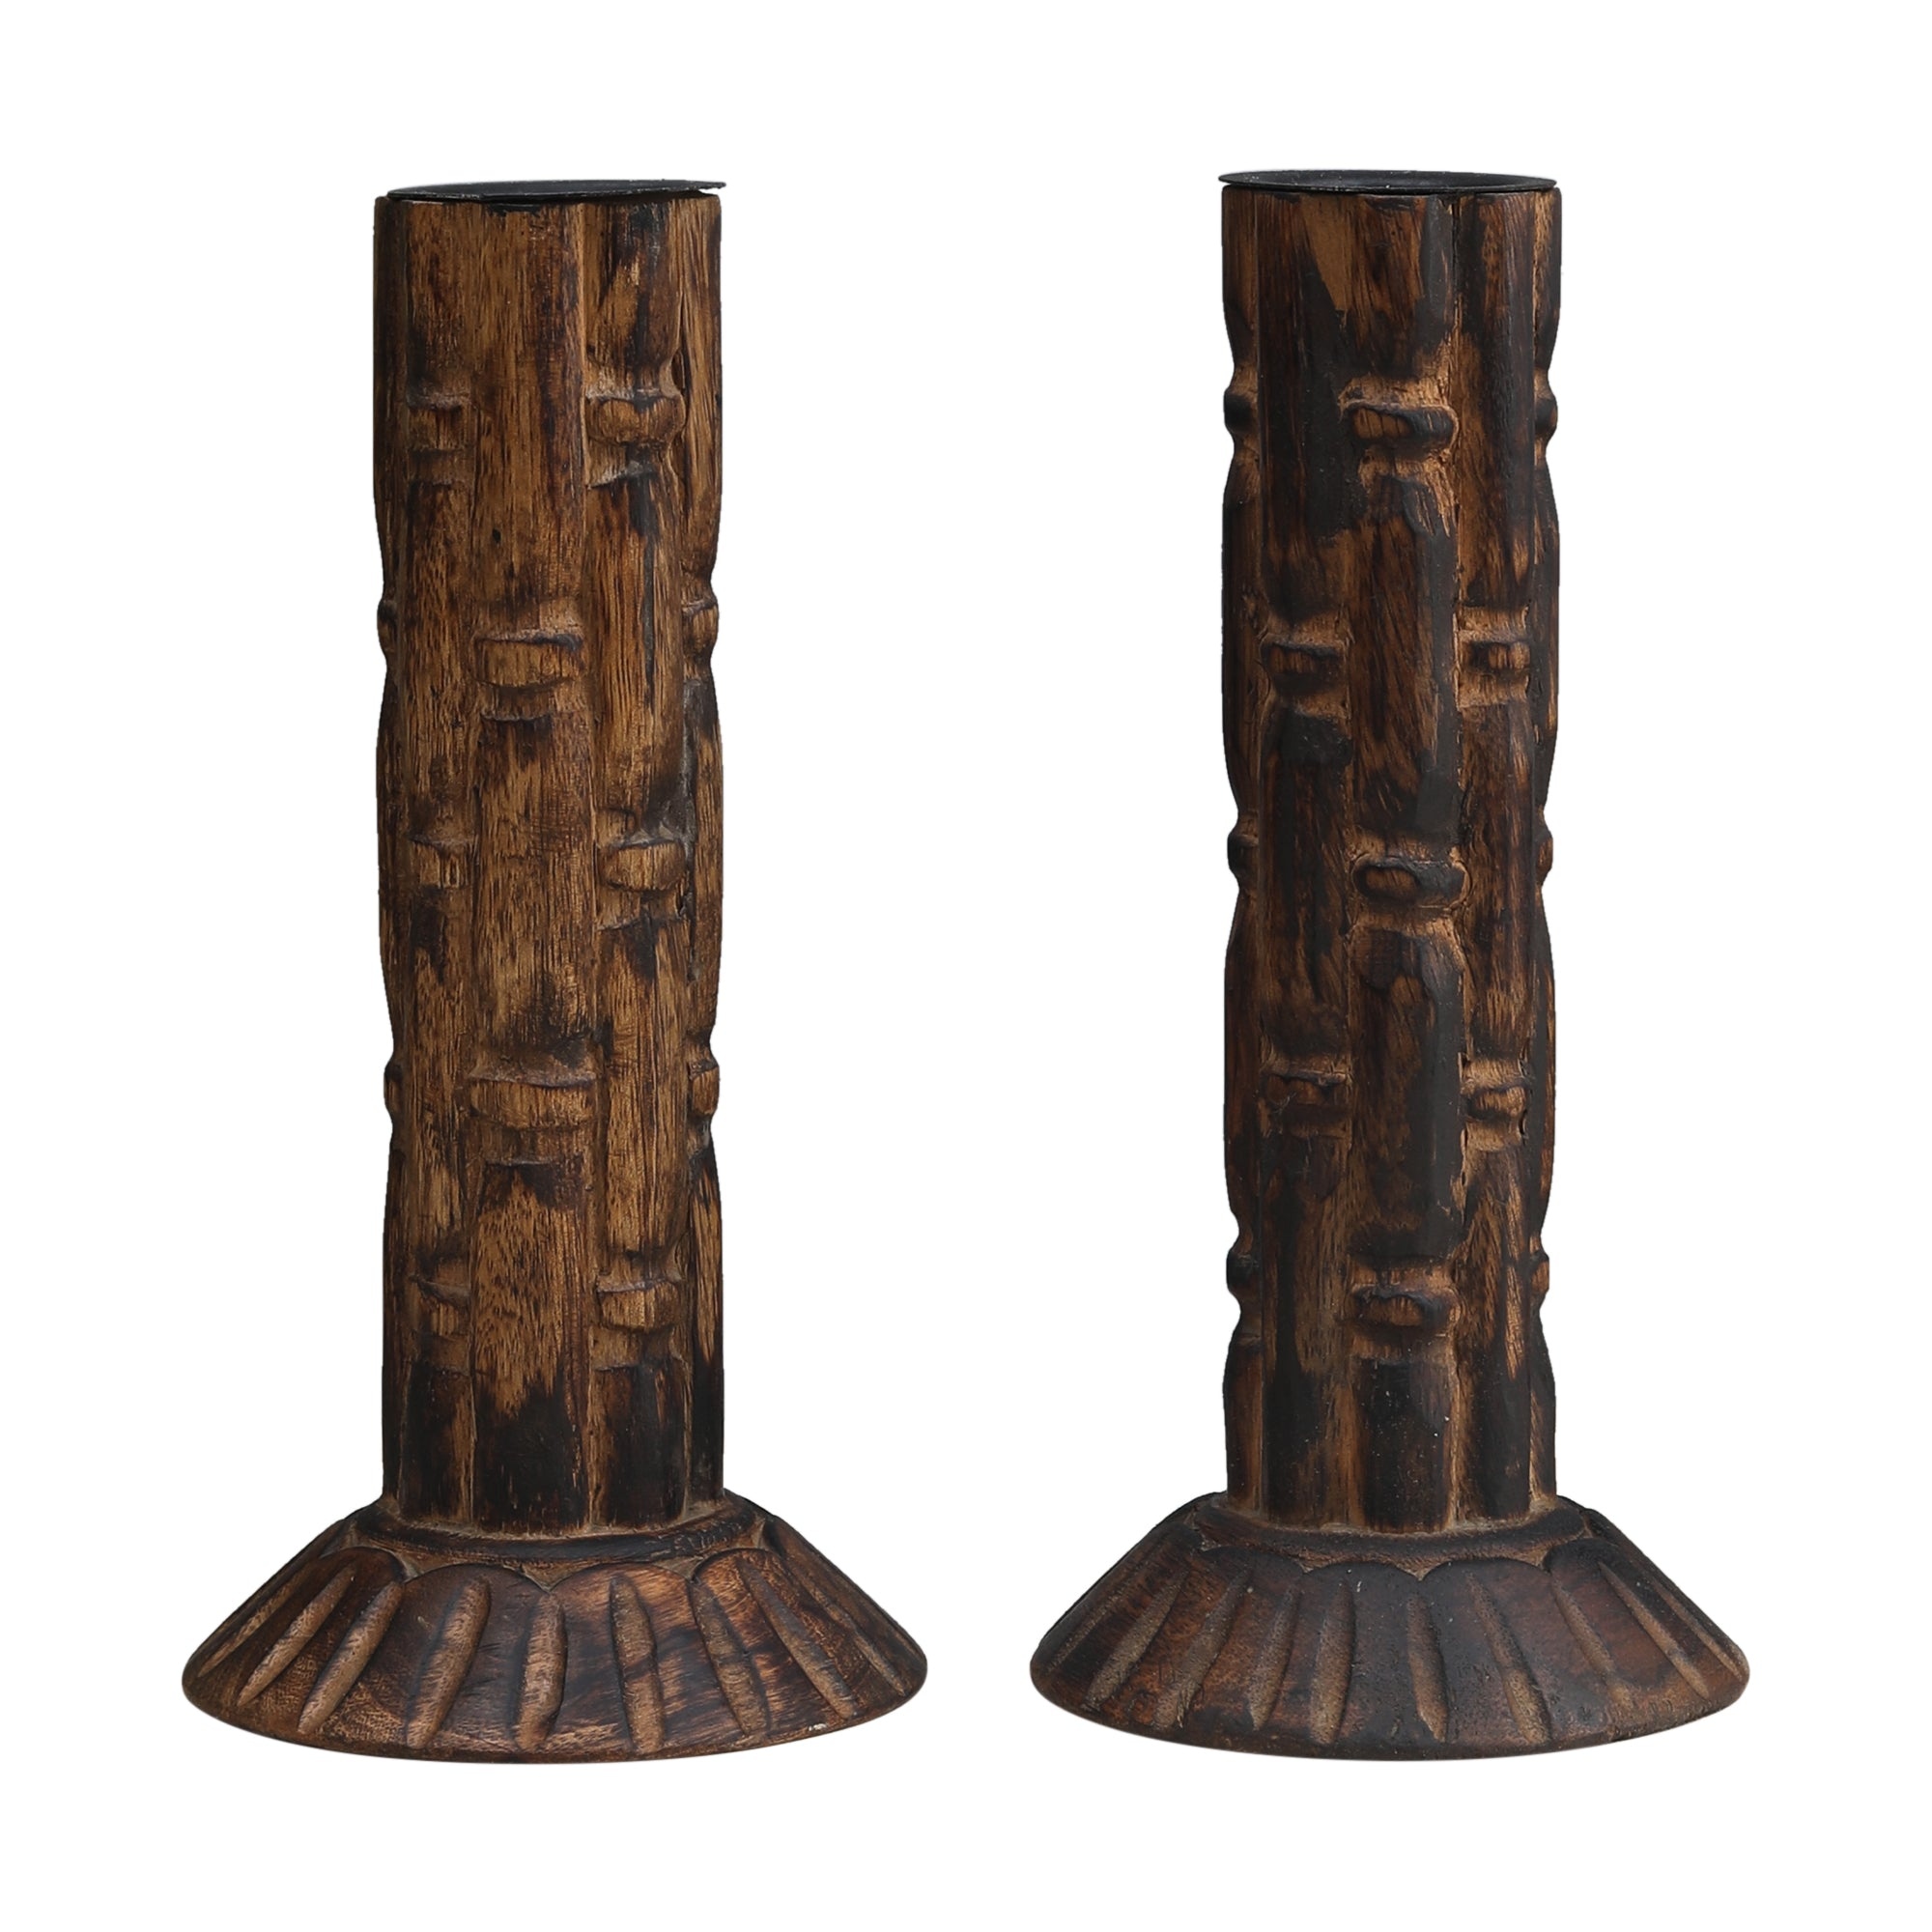 Tribal Wood Carving - Candle Stand (Single)